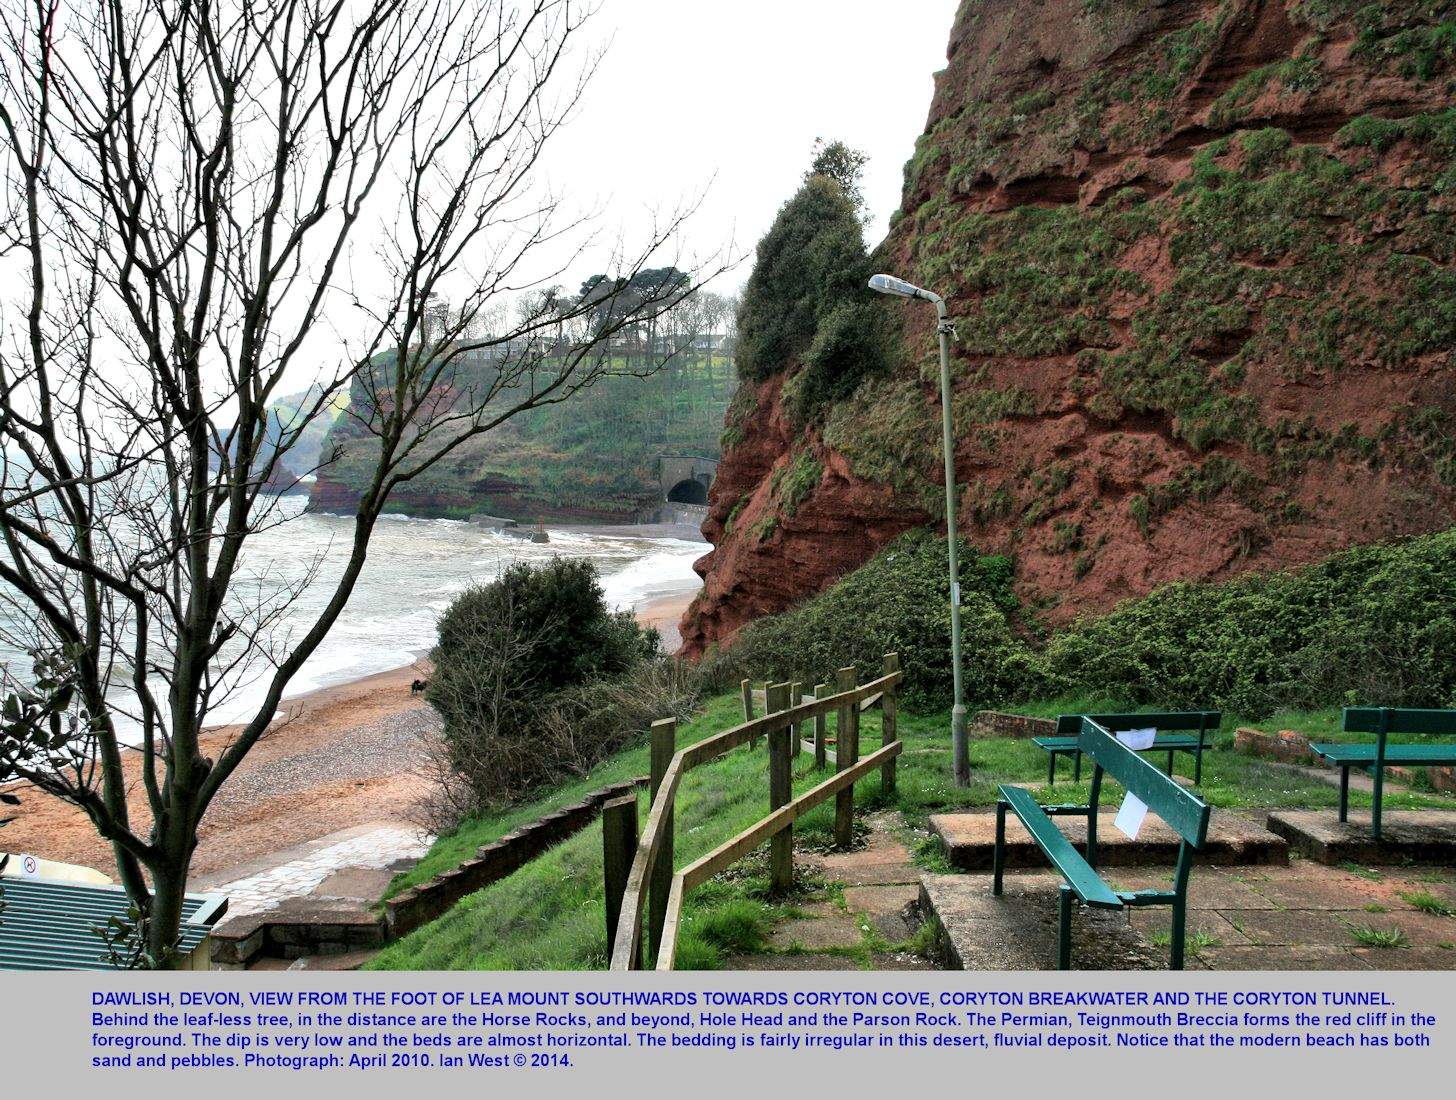 At Lea Mount, looking southward towards Coryton's Cove, Horse Rocks and Hole Head, with Permian Teignmouth Breccia in the cliff, Dawlish, Devon